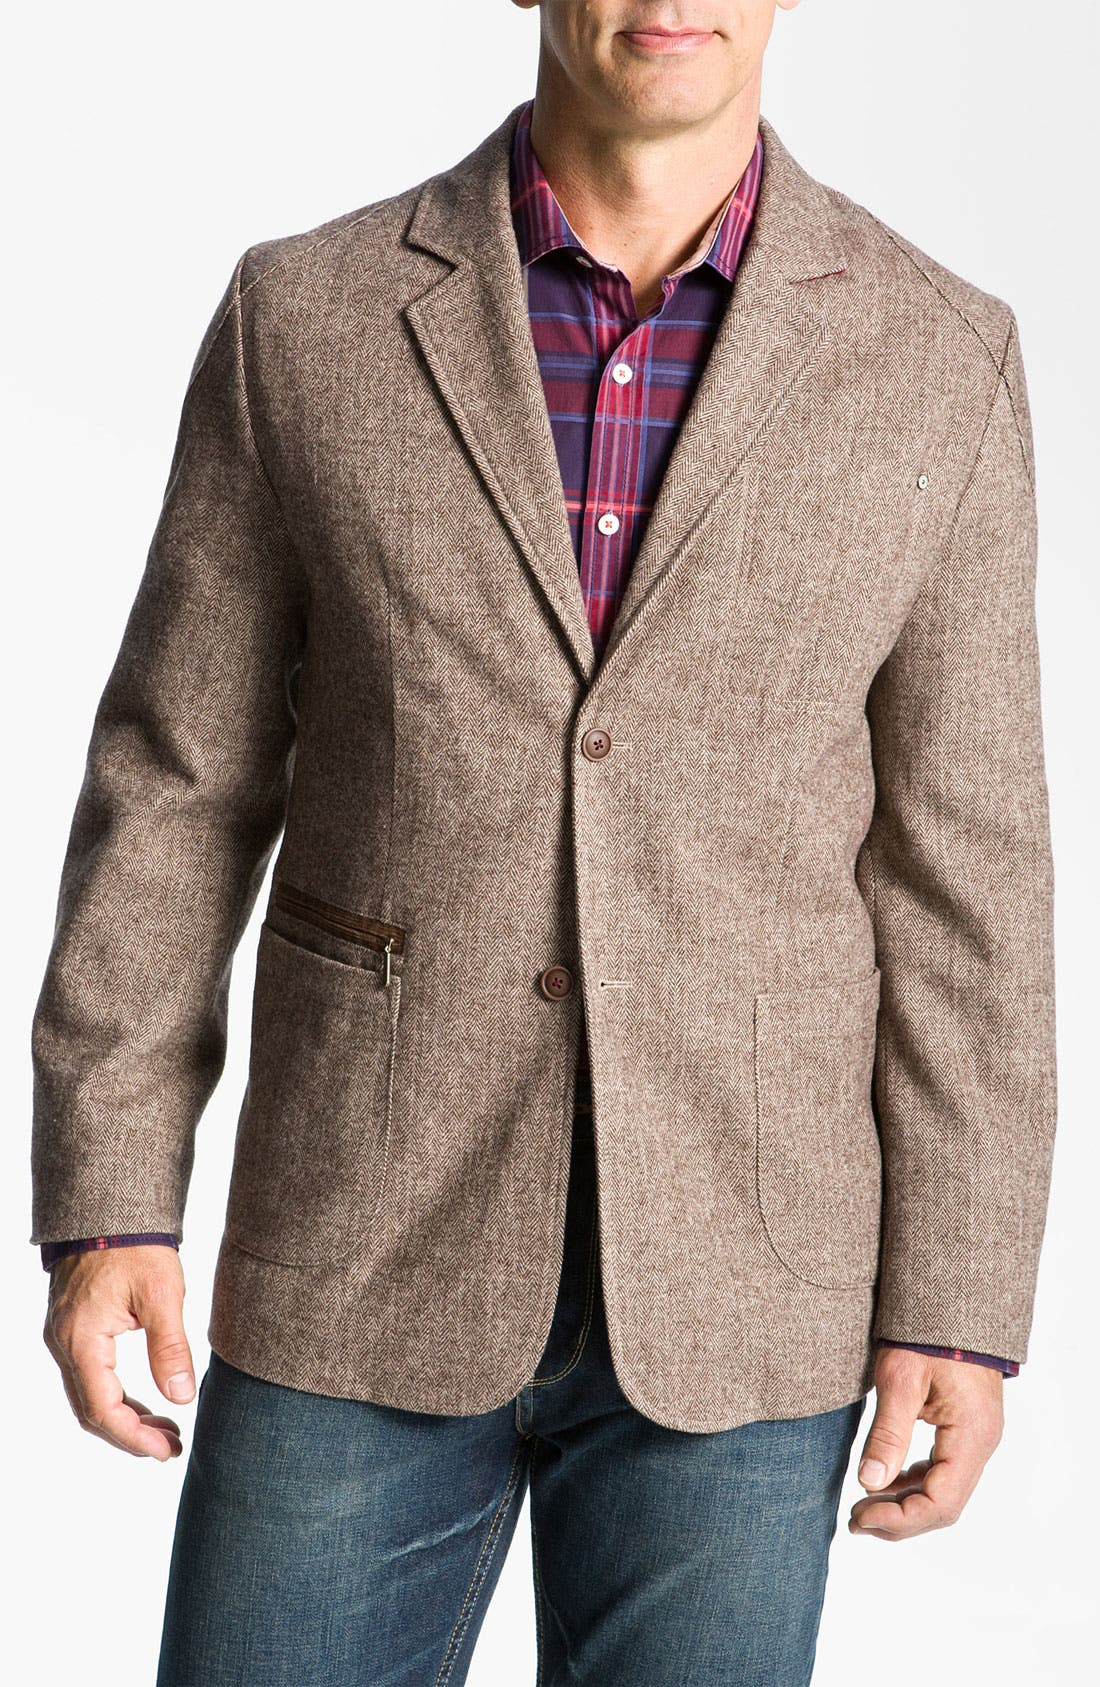 Alternate Image 1 Selected - Tommy Bahama Denim 'Heritage' Herringbone Blazer